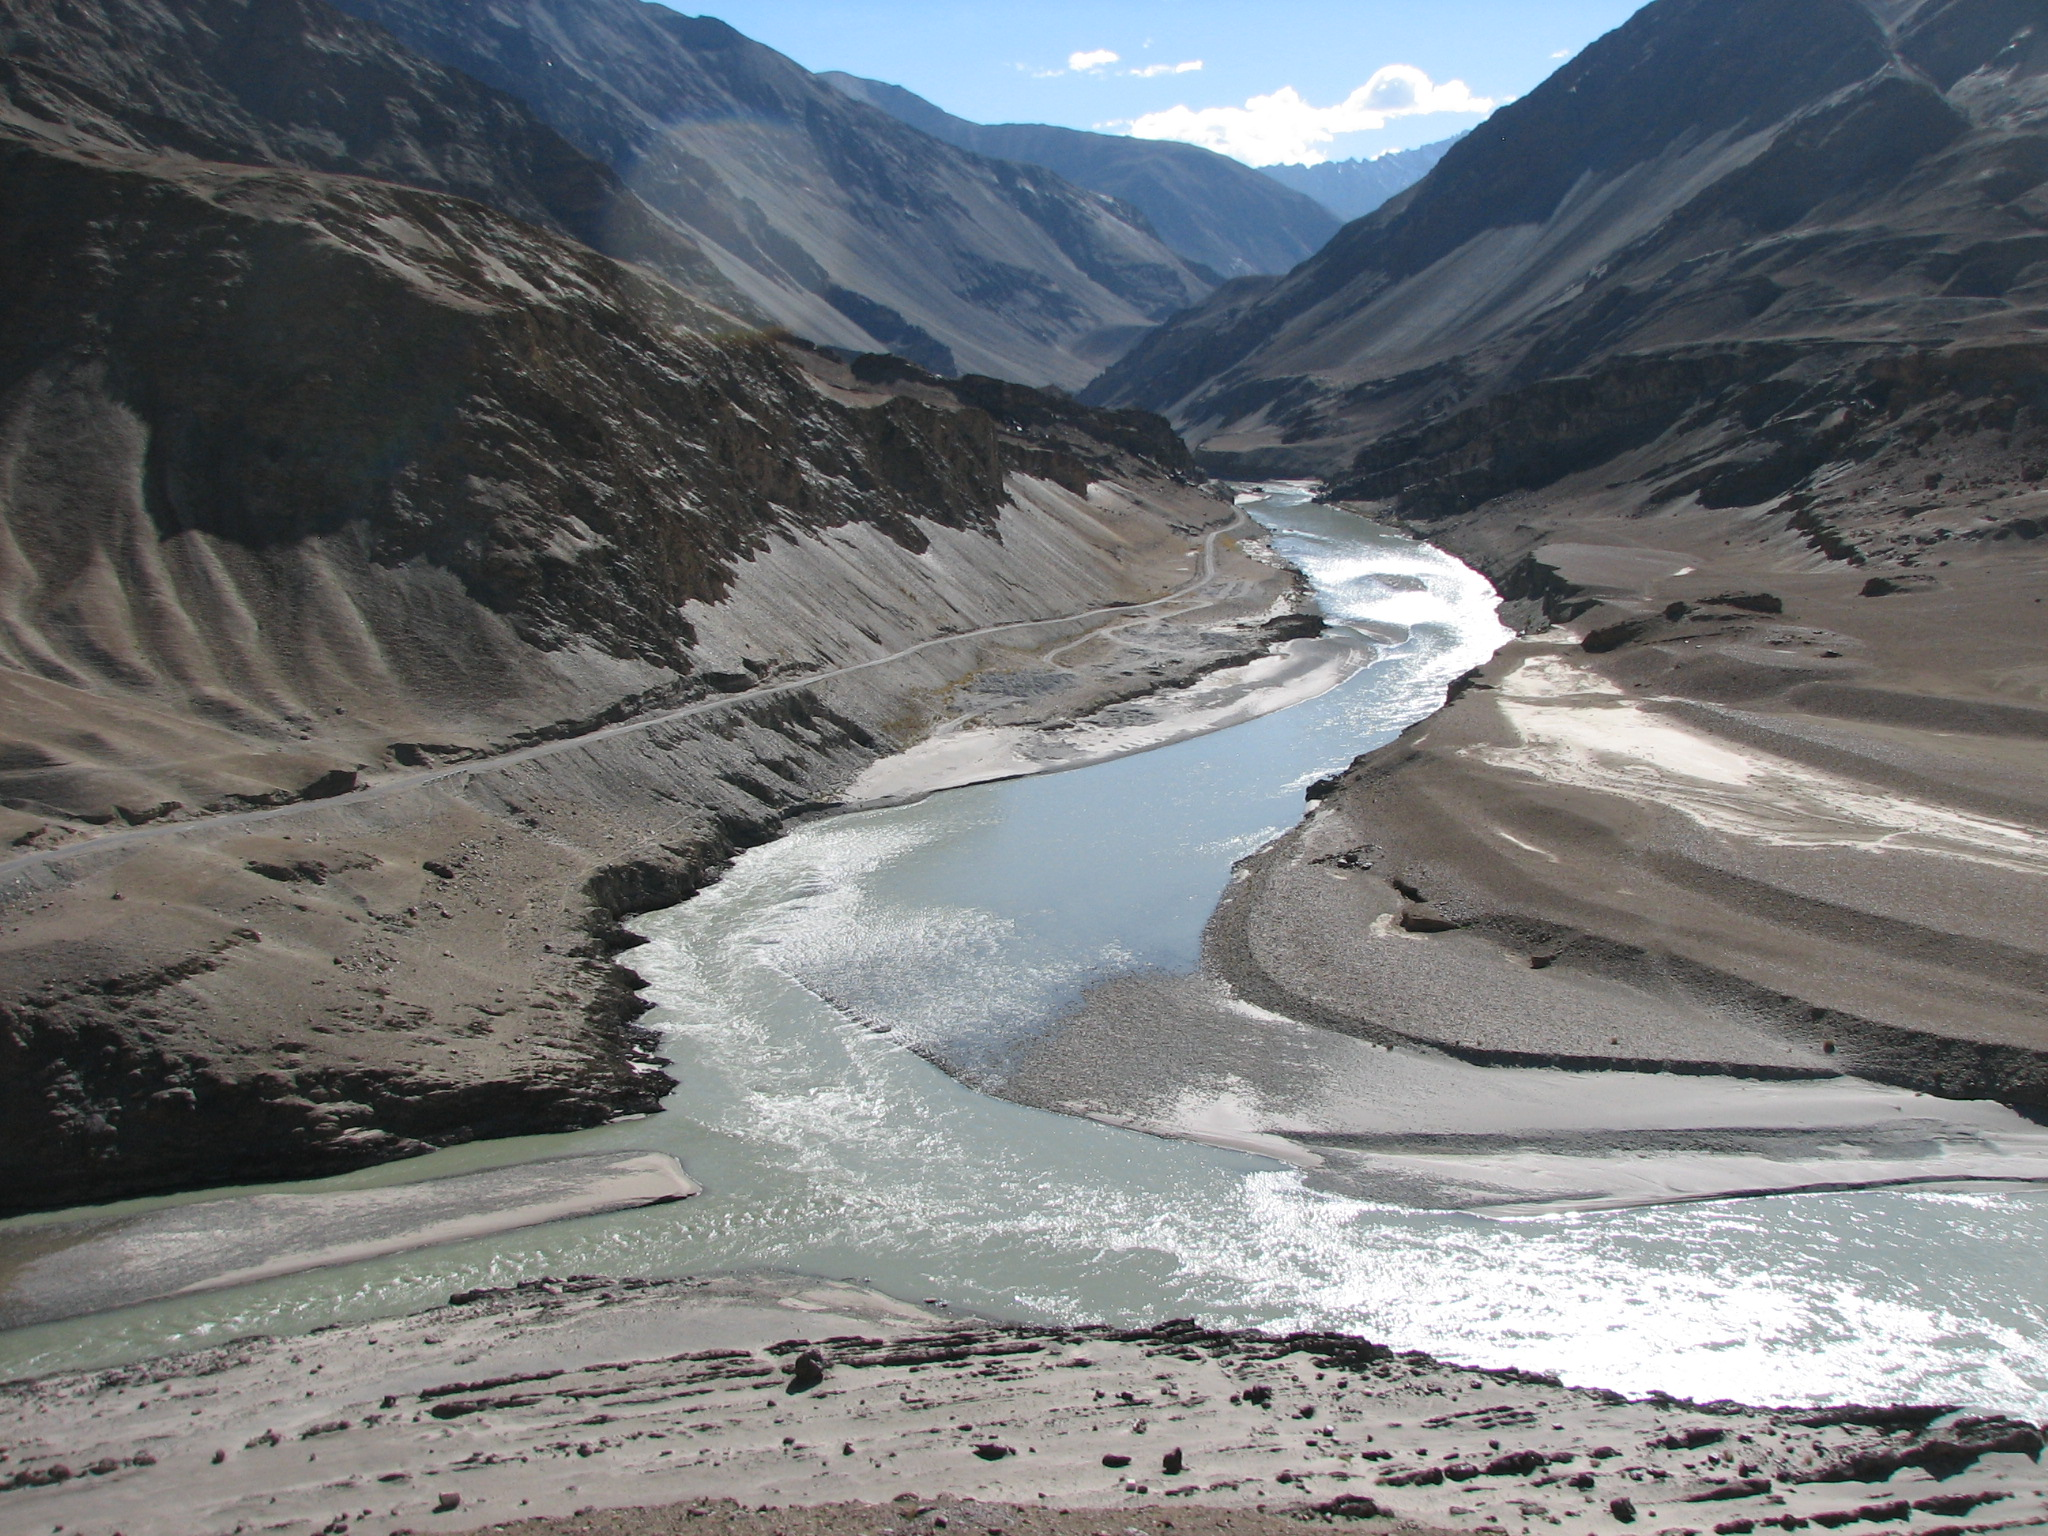 incredible_india_high_in_the_dry_desert_of_the_trans_himalaya_water_the_little_indus_river_left_flows_into_the_zanskar_river_-_panoramio